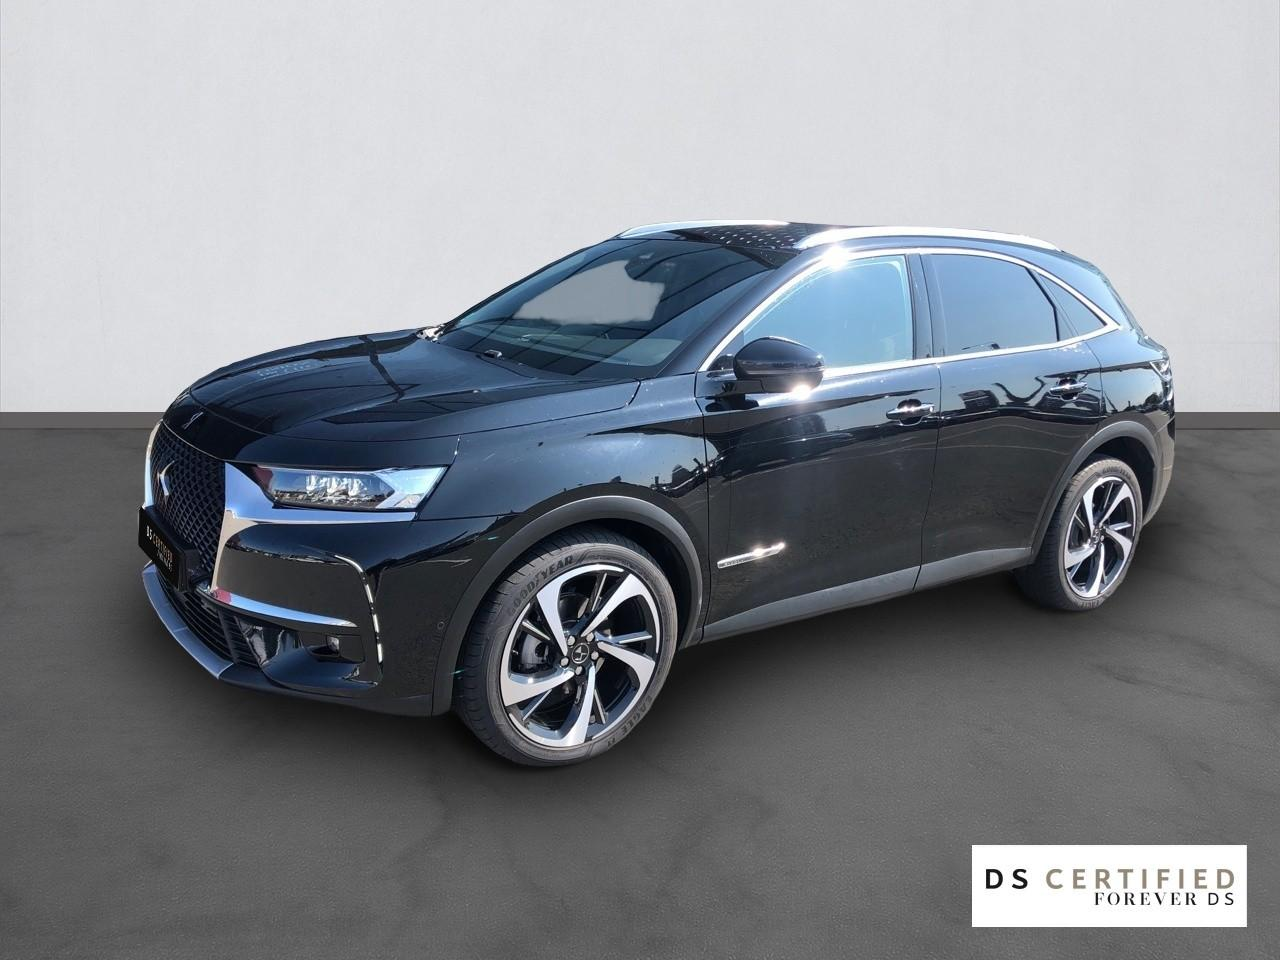 Ds DS 7 Crossback CROSSBACK PTECH 225 EAT8 GD CHIC